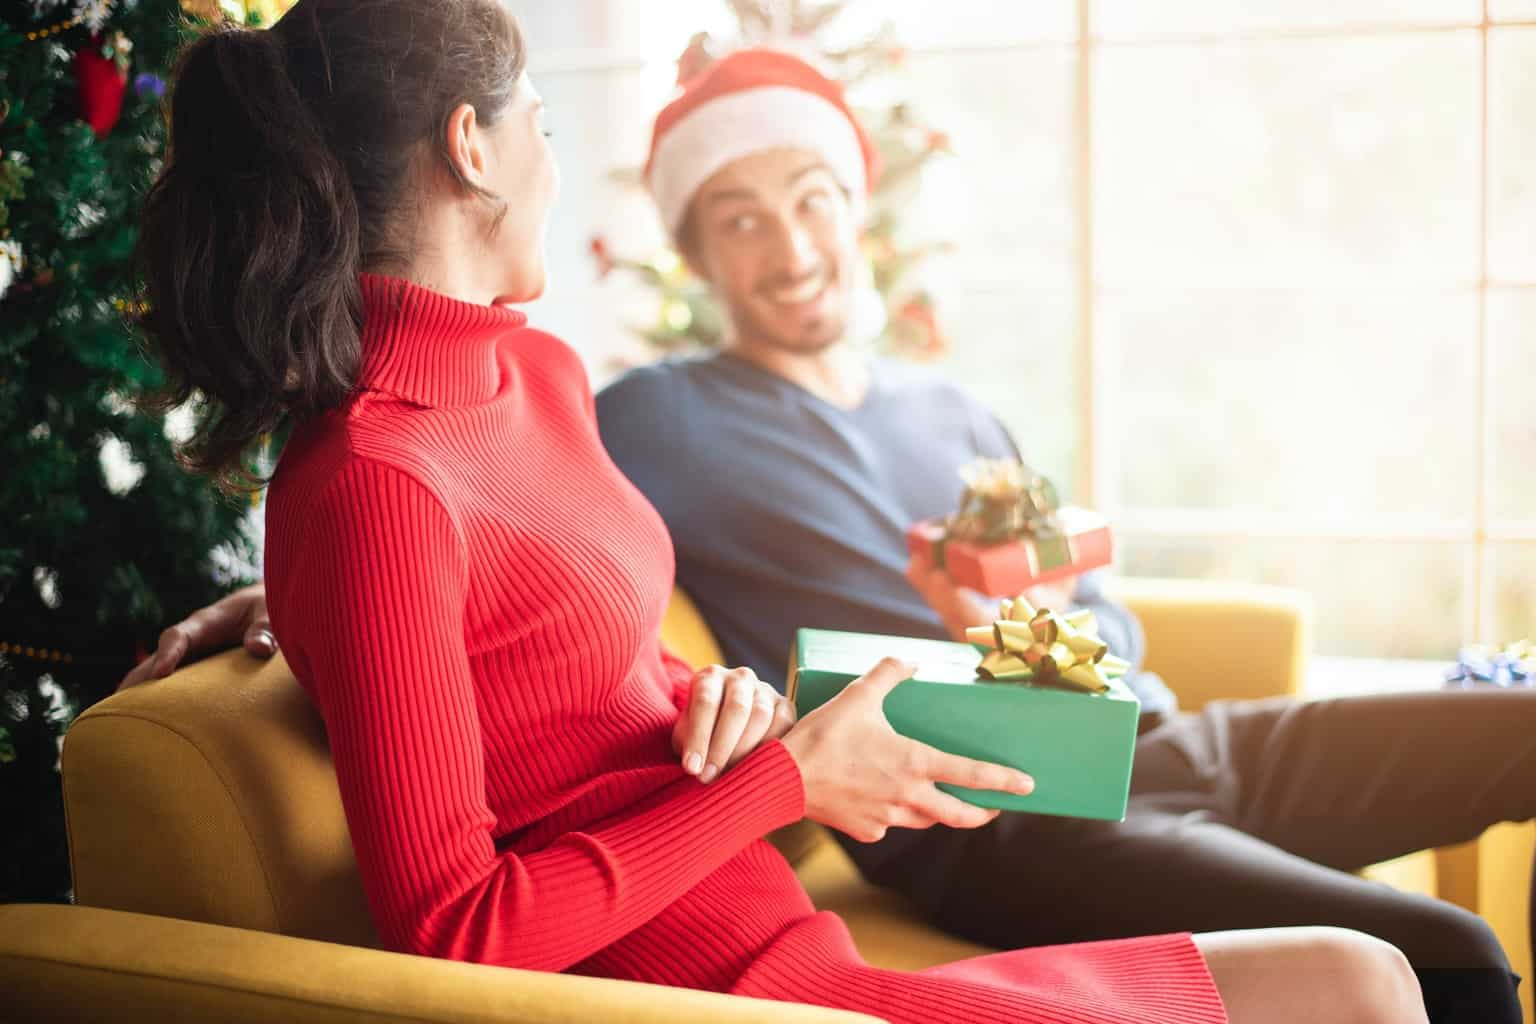 73 Best Christmas Gifts for Husband that He Will Love